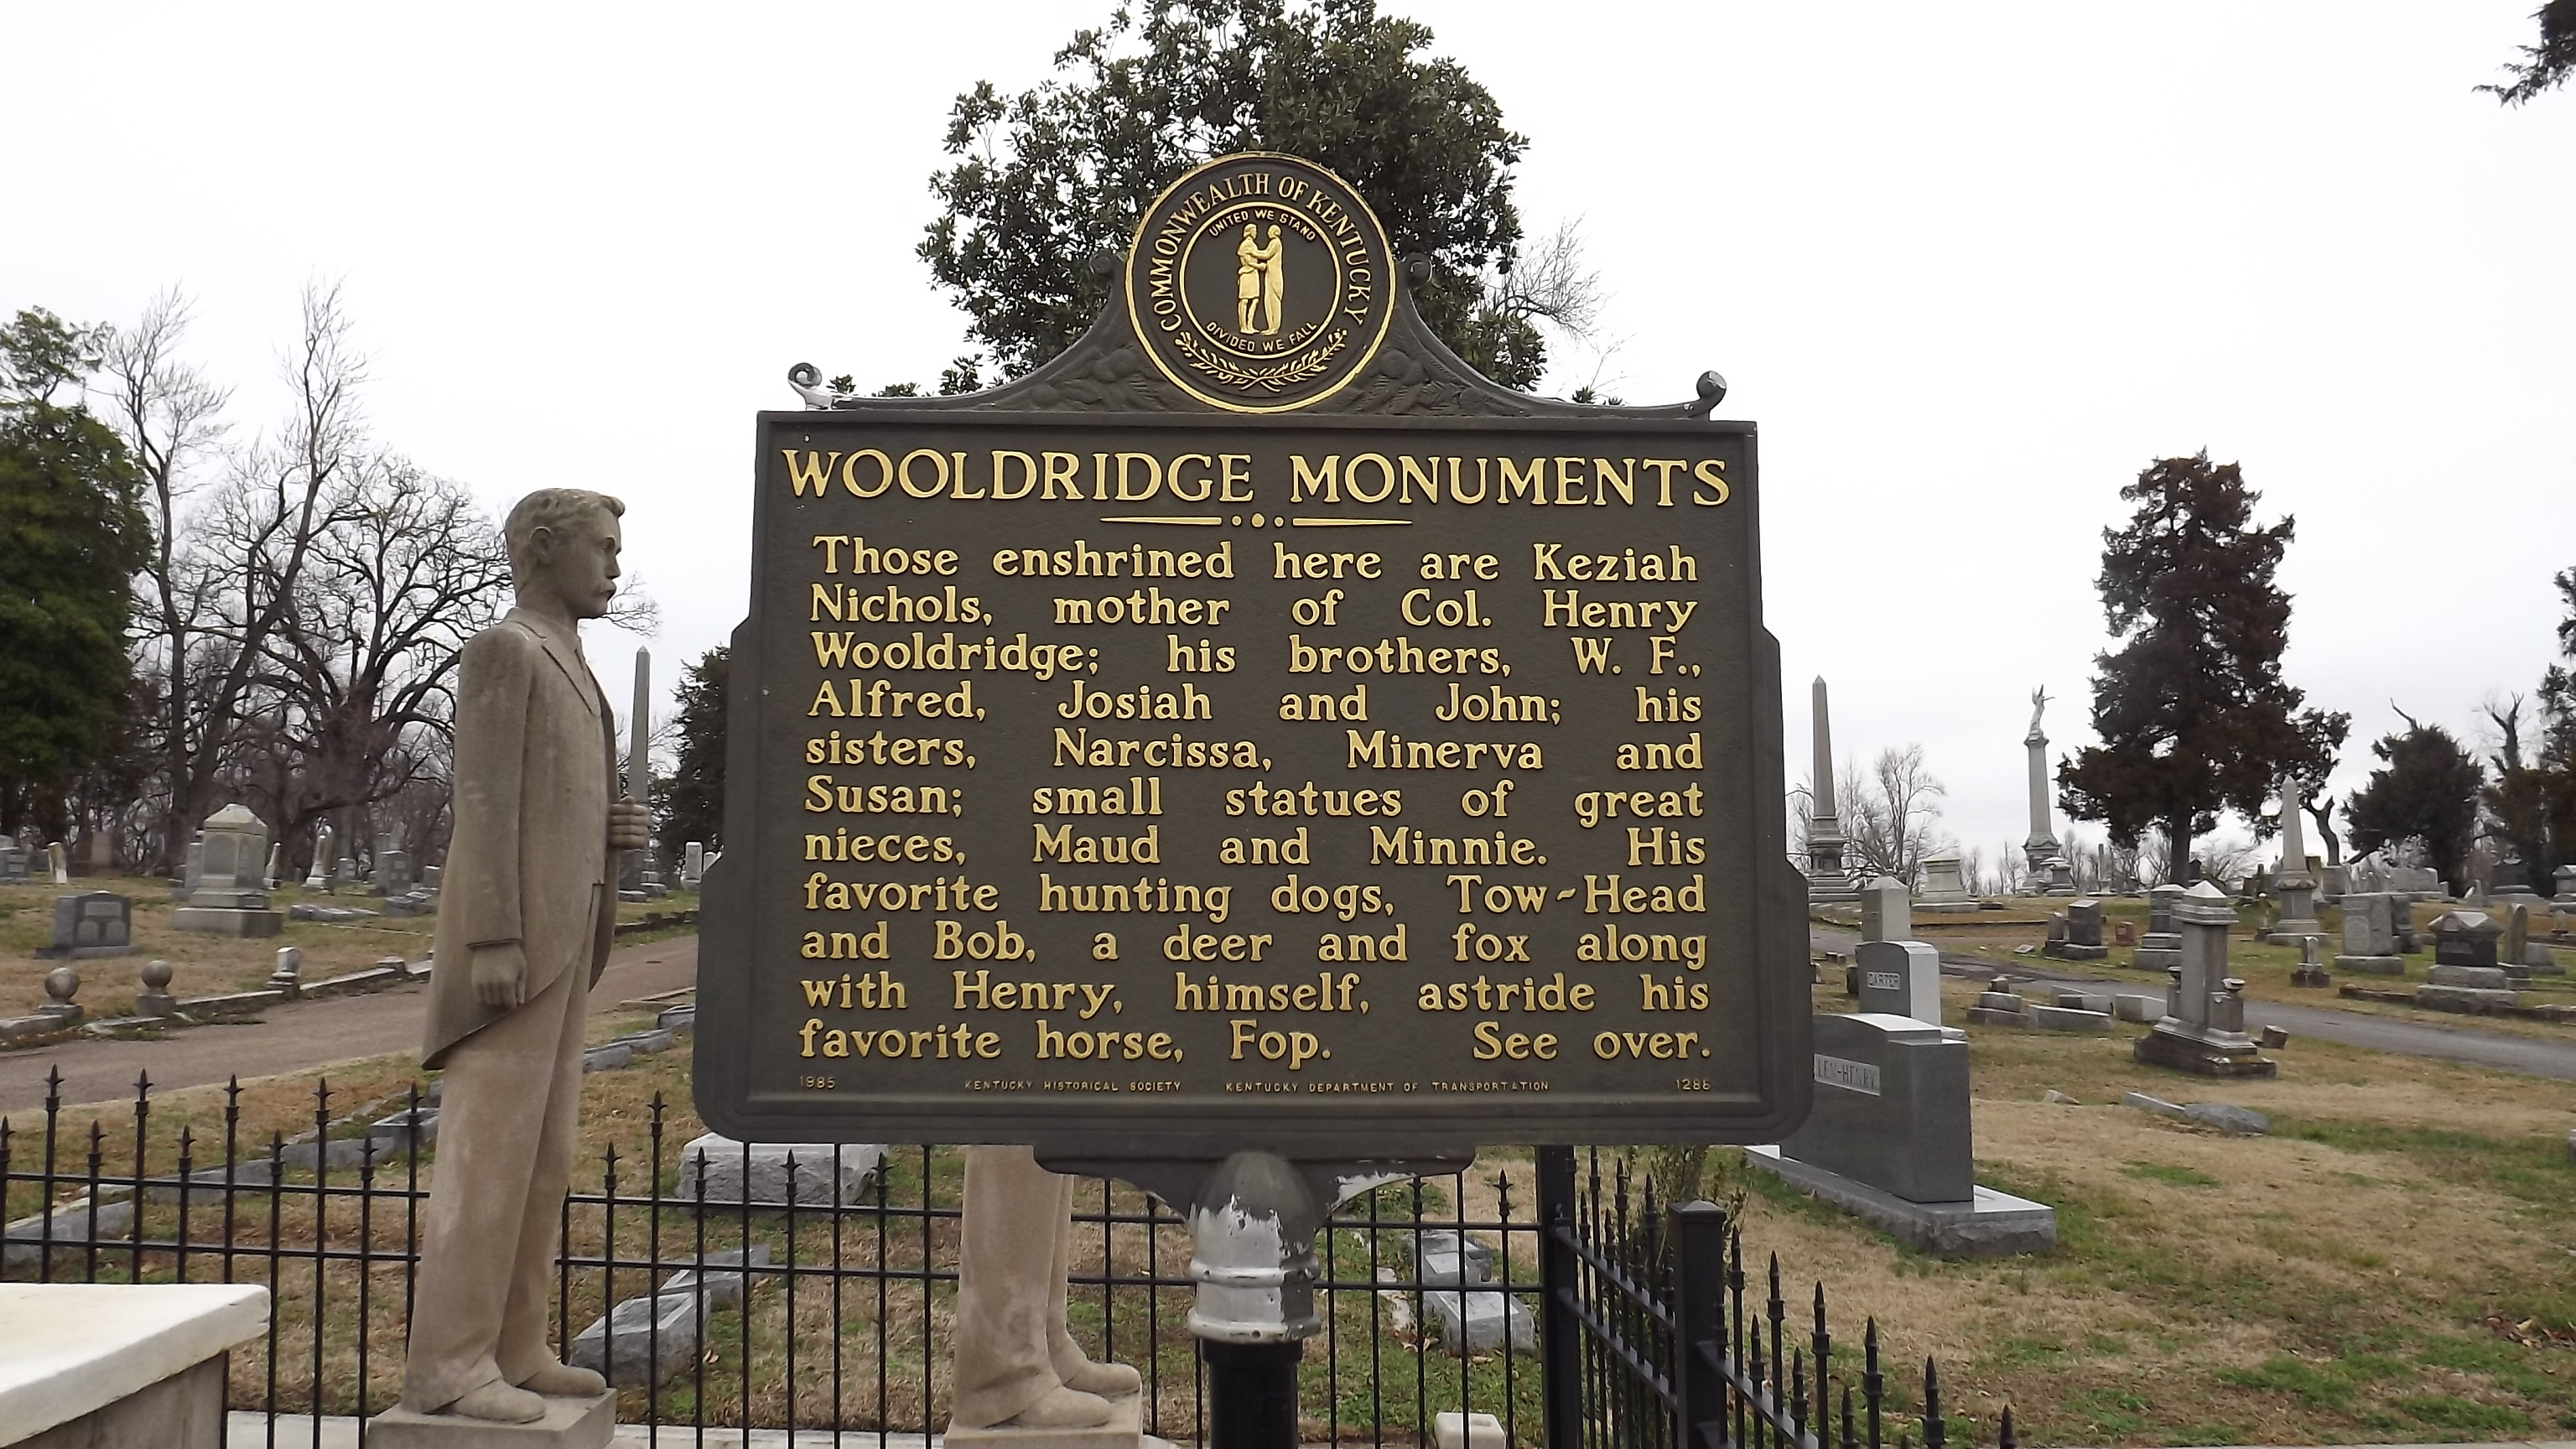 Wooldridge Monuments Marker